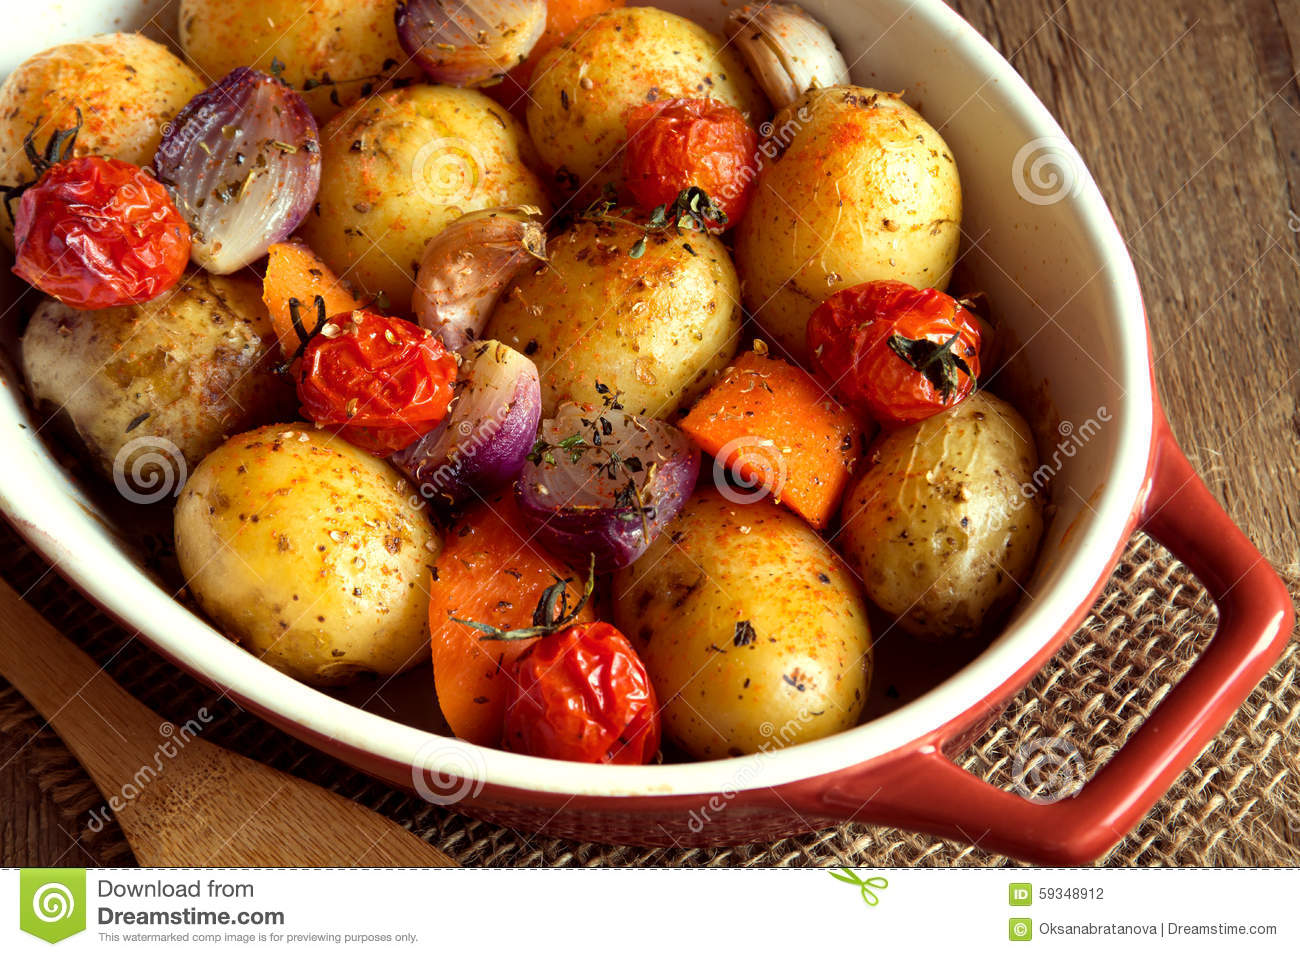 Oven Baked Vegetables Stock Photo - Image: 59348912 Relaxing Dog Music Audio